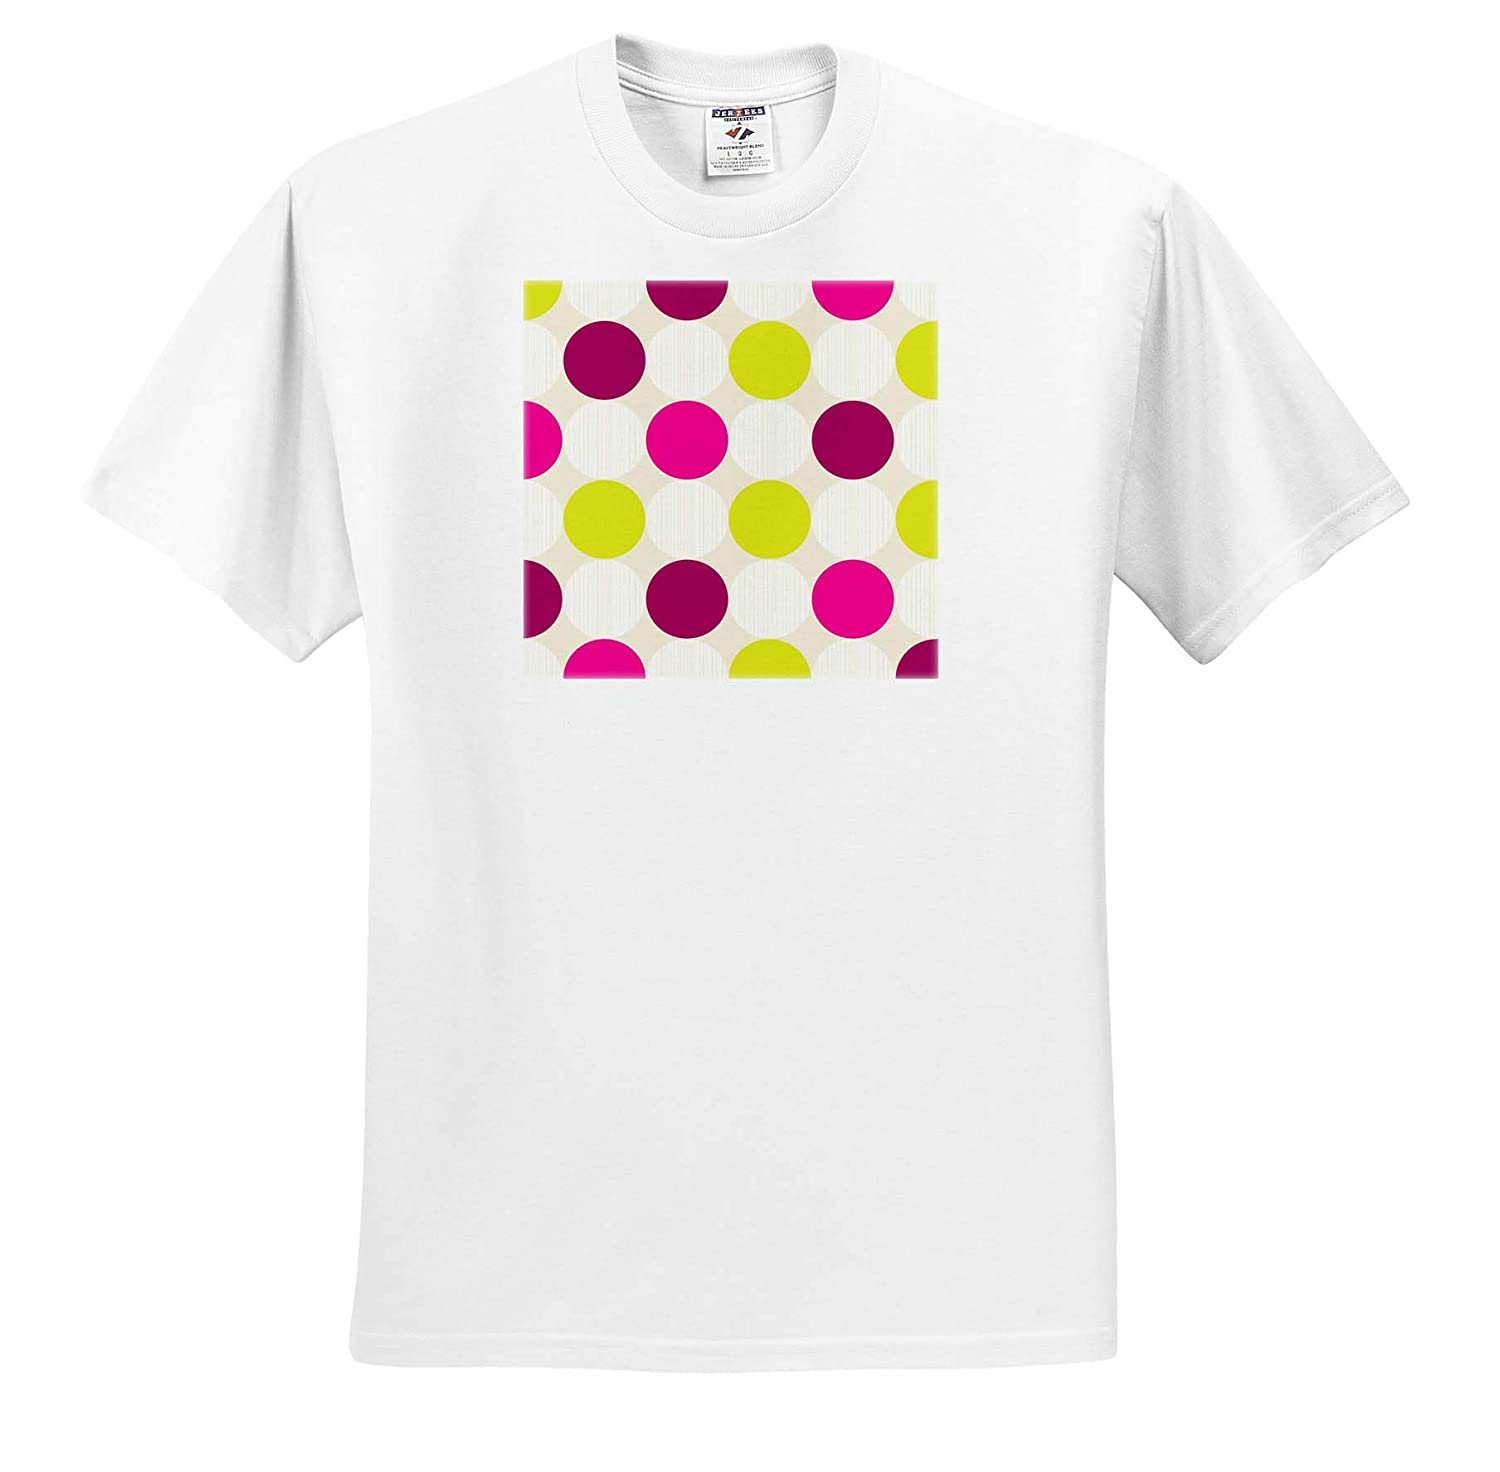 3dRose Lens Art by Florene Adult T-Shirt XL Image of Large Fuchsia Lime and Ivory Polka Dots Polka Dots ts/_320799